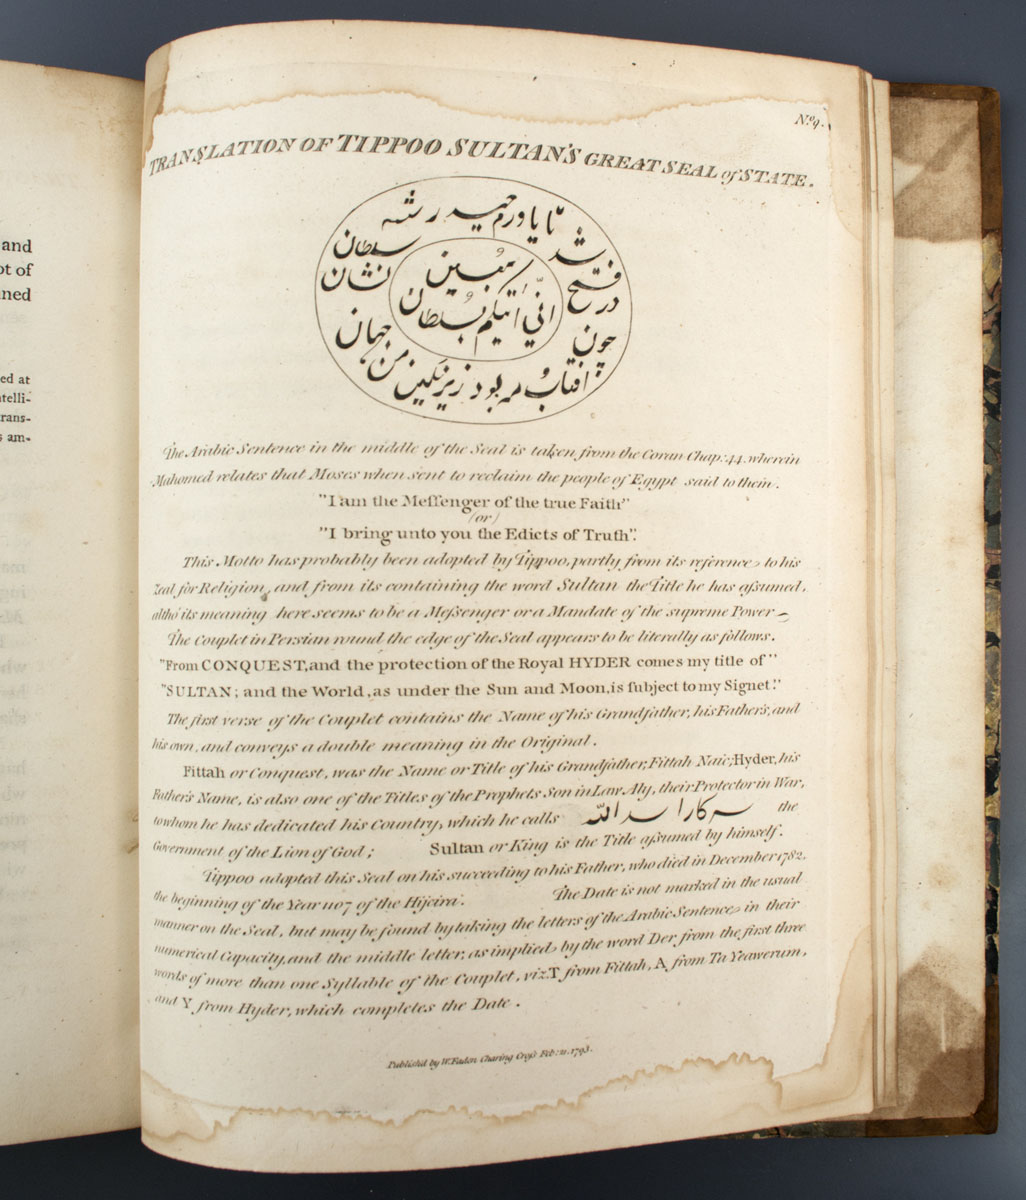 A Narrative of the Campaign in India, Which Terminated the War with Tippoo Sultan, in 1792.